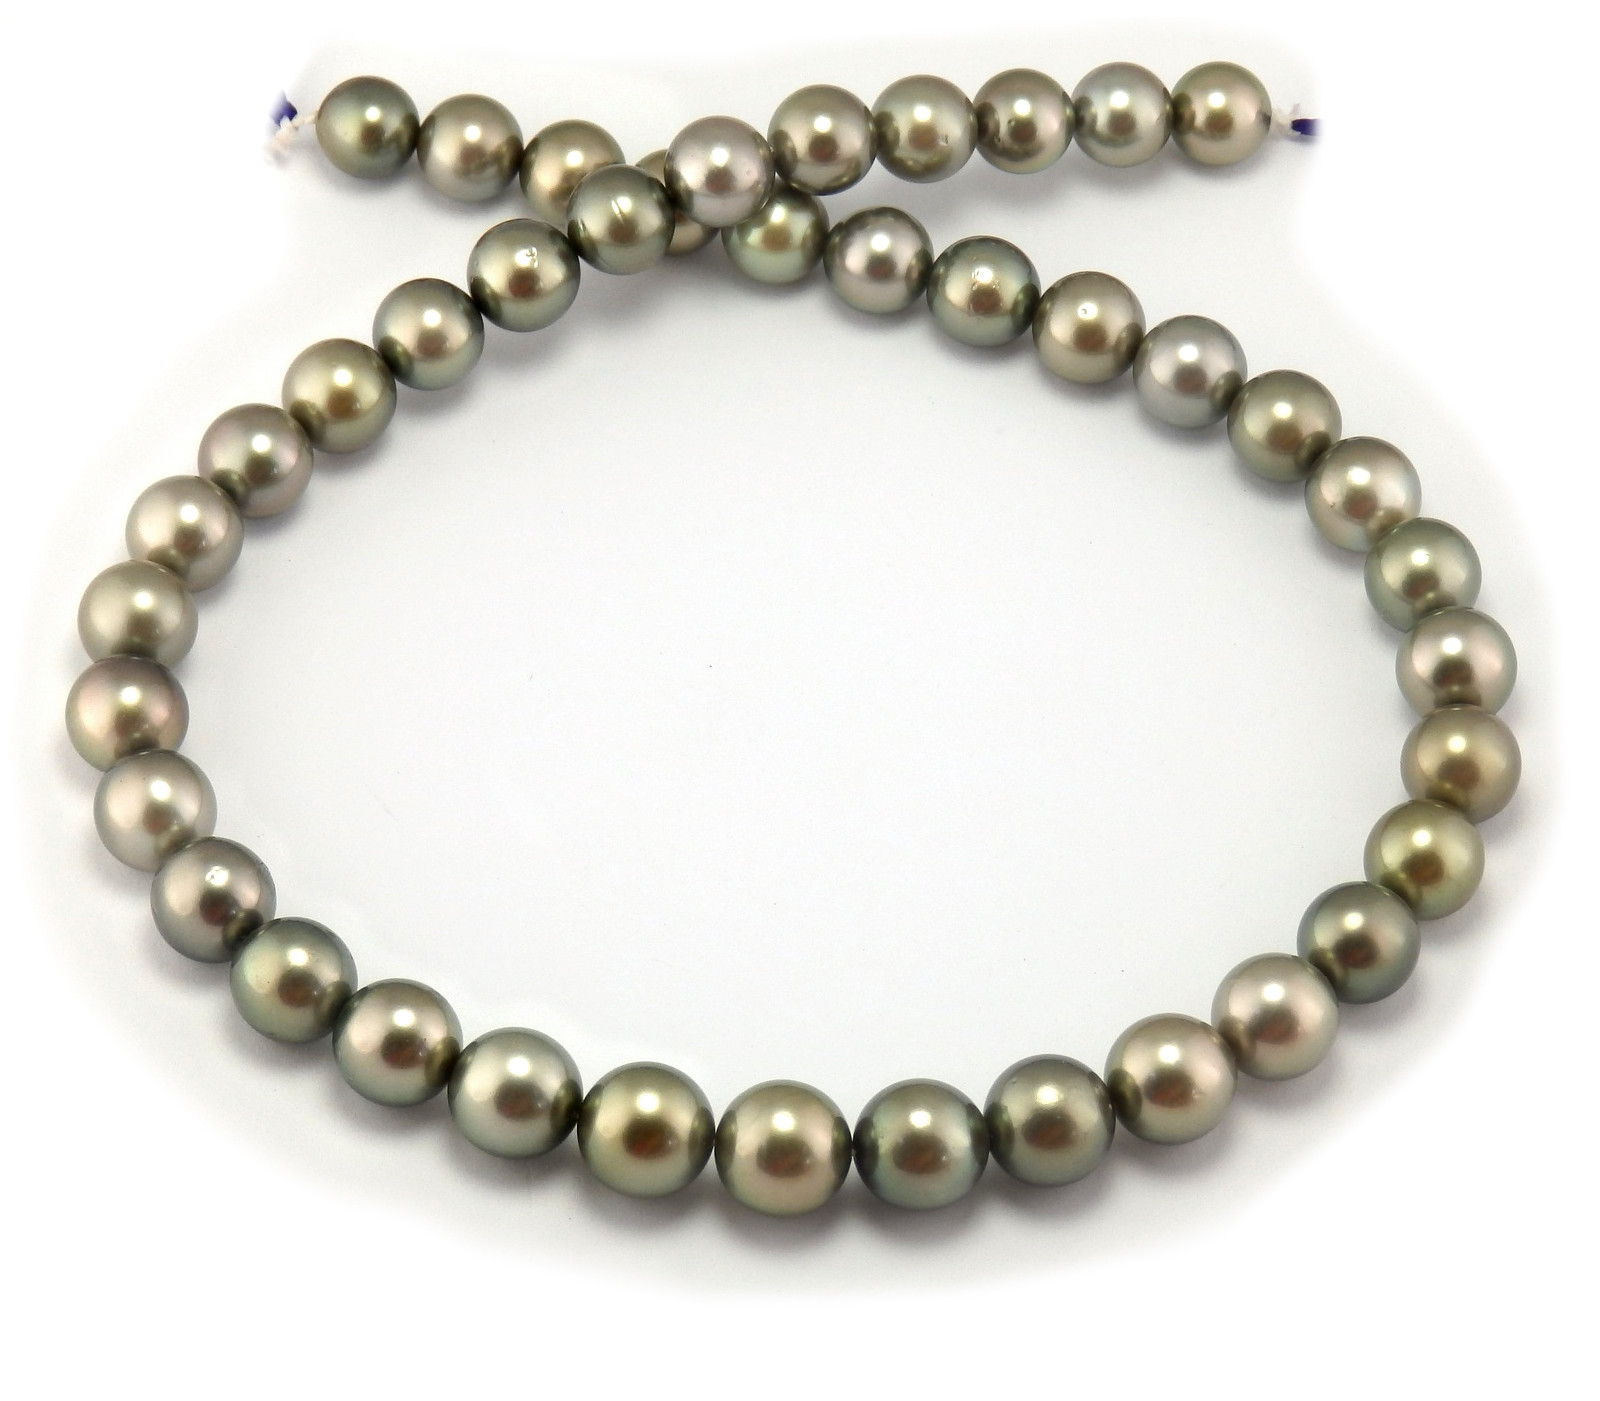 tahitian pearl necklace with green gray tahitian pearls